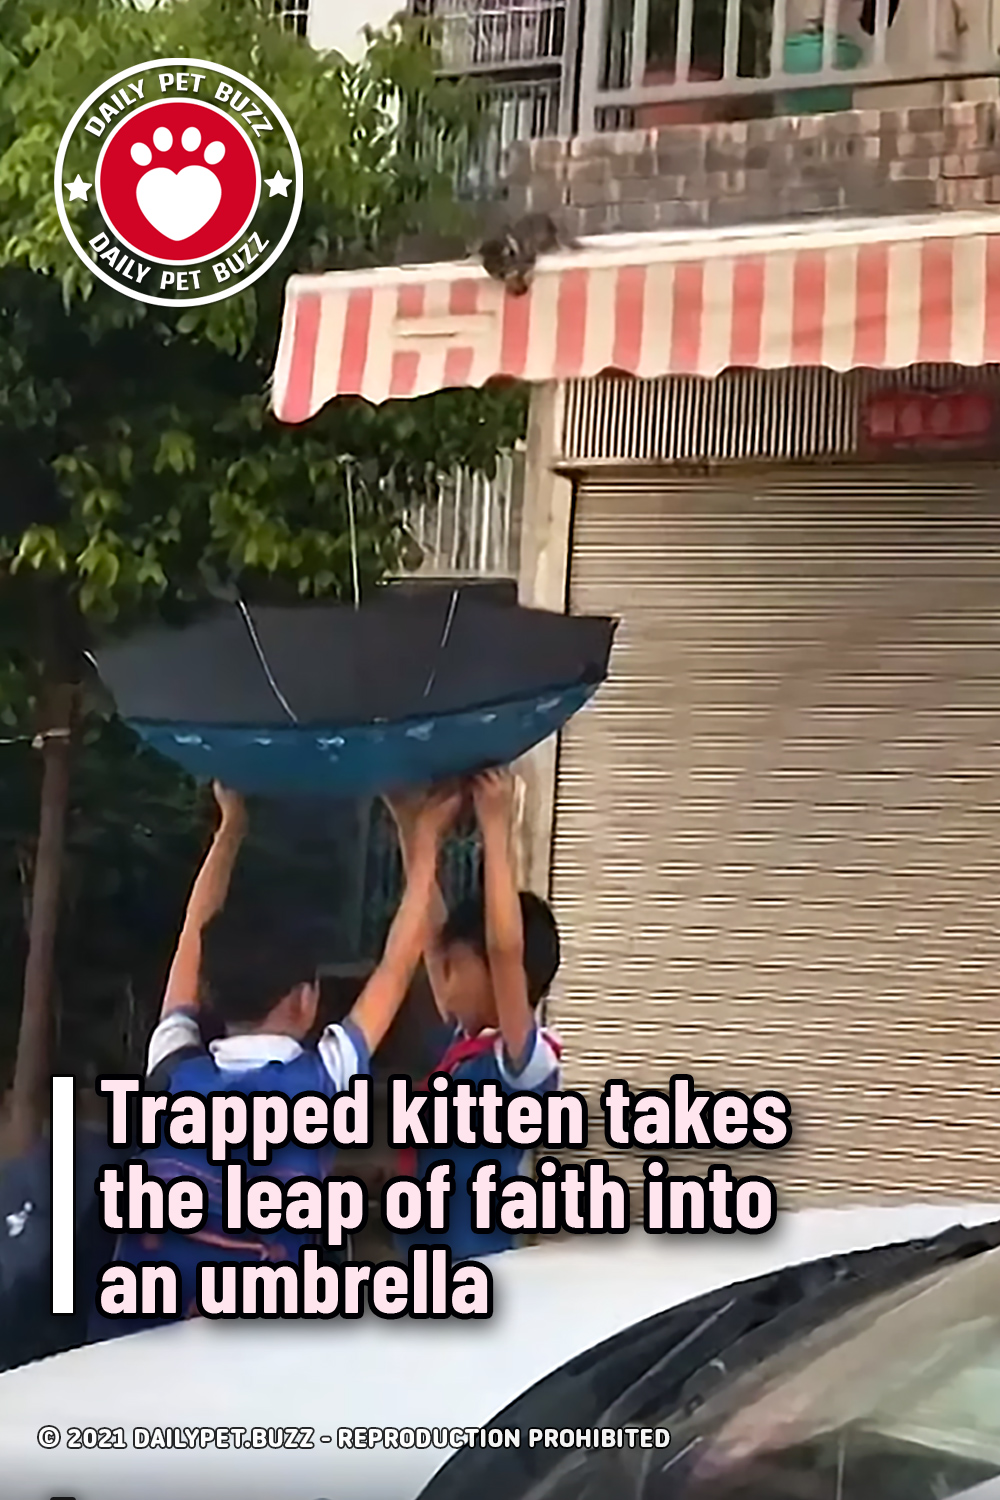 Trapped kitten takes the leap of faith into an umbrella